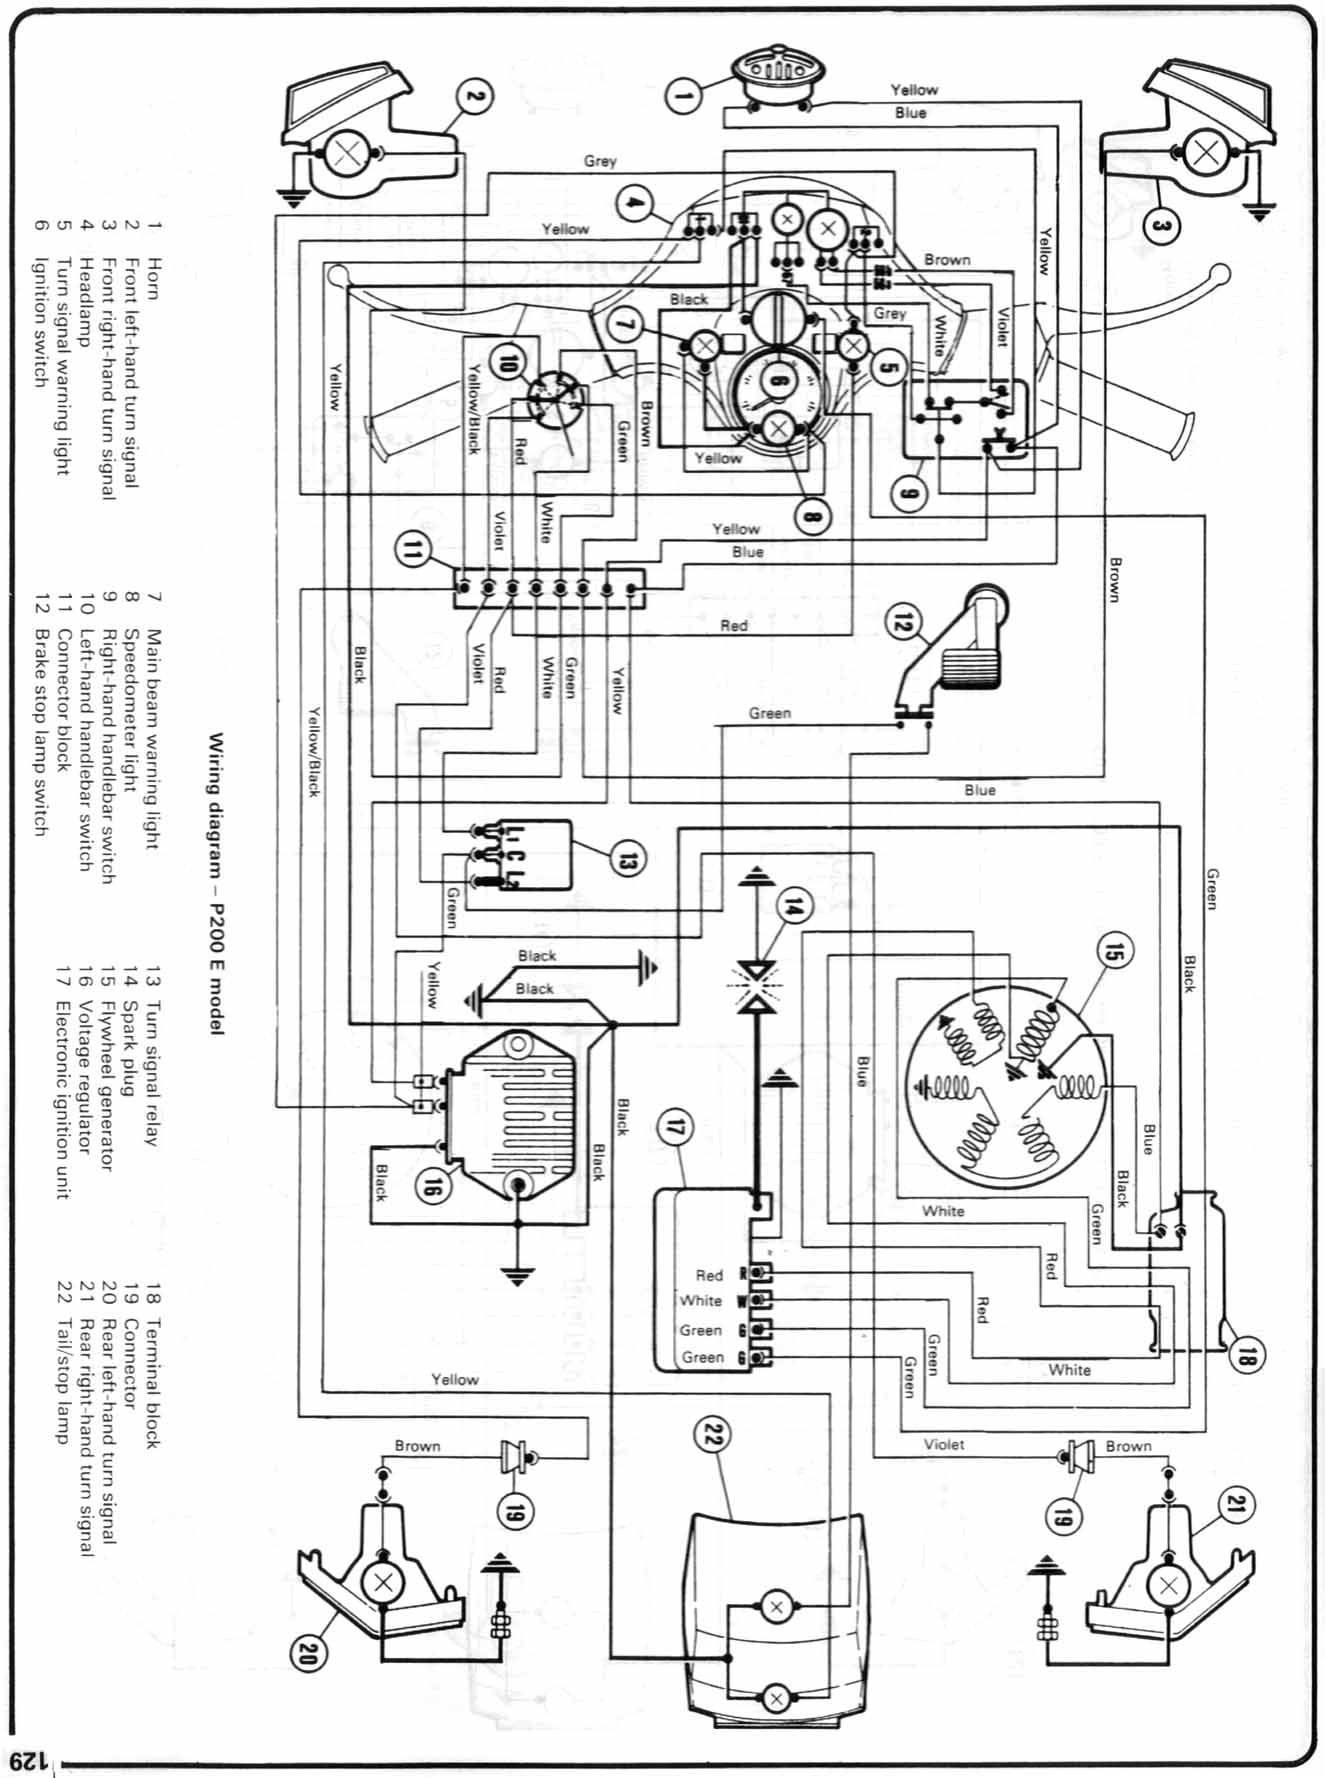 1985 ford mustang gt wiring diagram ford gt wiring diagram